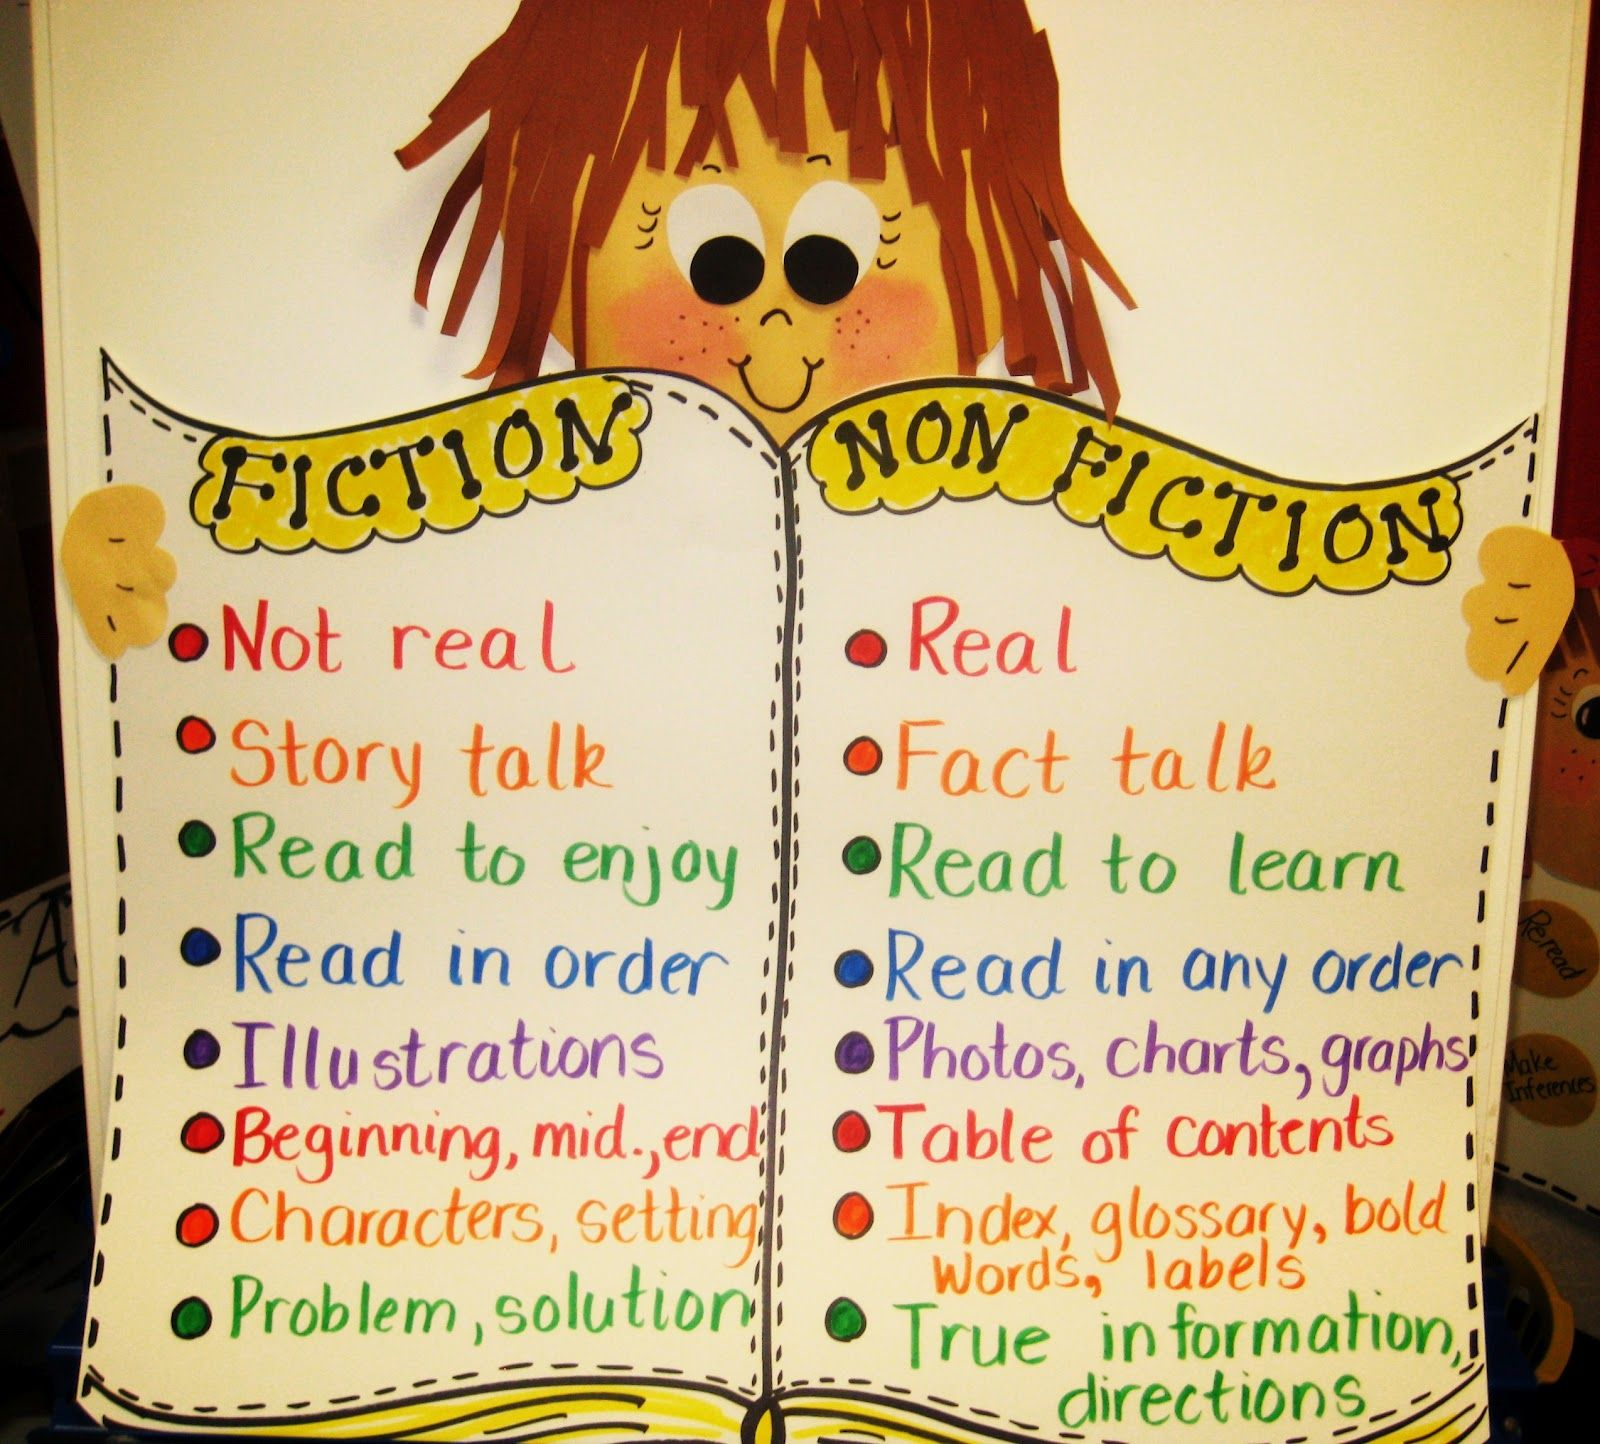 Fiction Vs Nonfiction This Could Make The Basis Of A